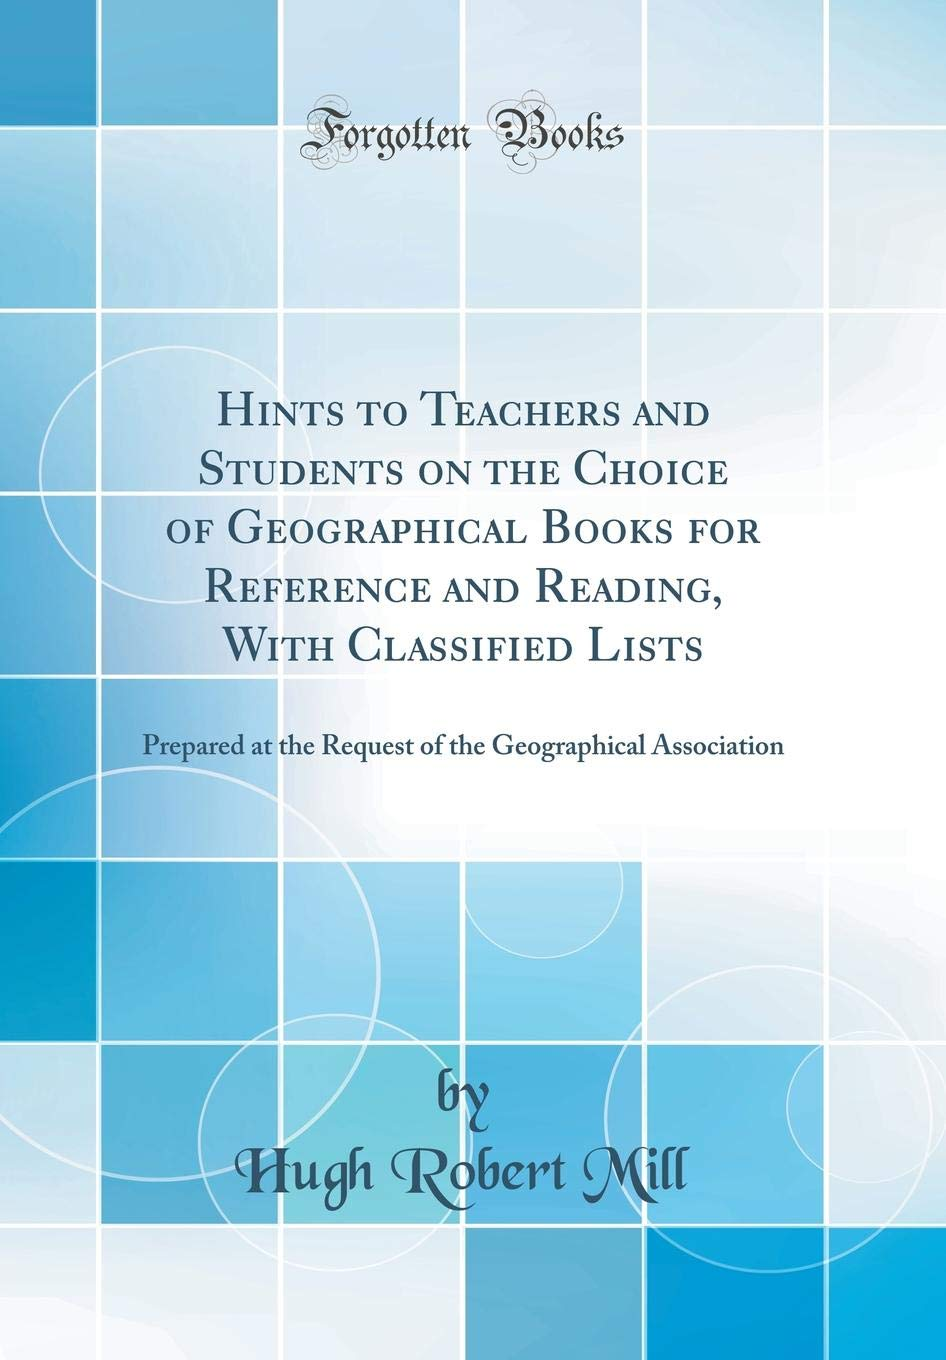 Download Hints to Teachers and Students on the Choice of Geographical Books for Reference and Reading, With Classified Lists: Prepared at the Request of the Geographical Association (Classic Reprint) pdf epub